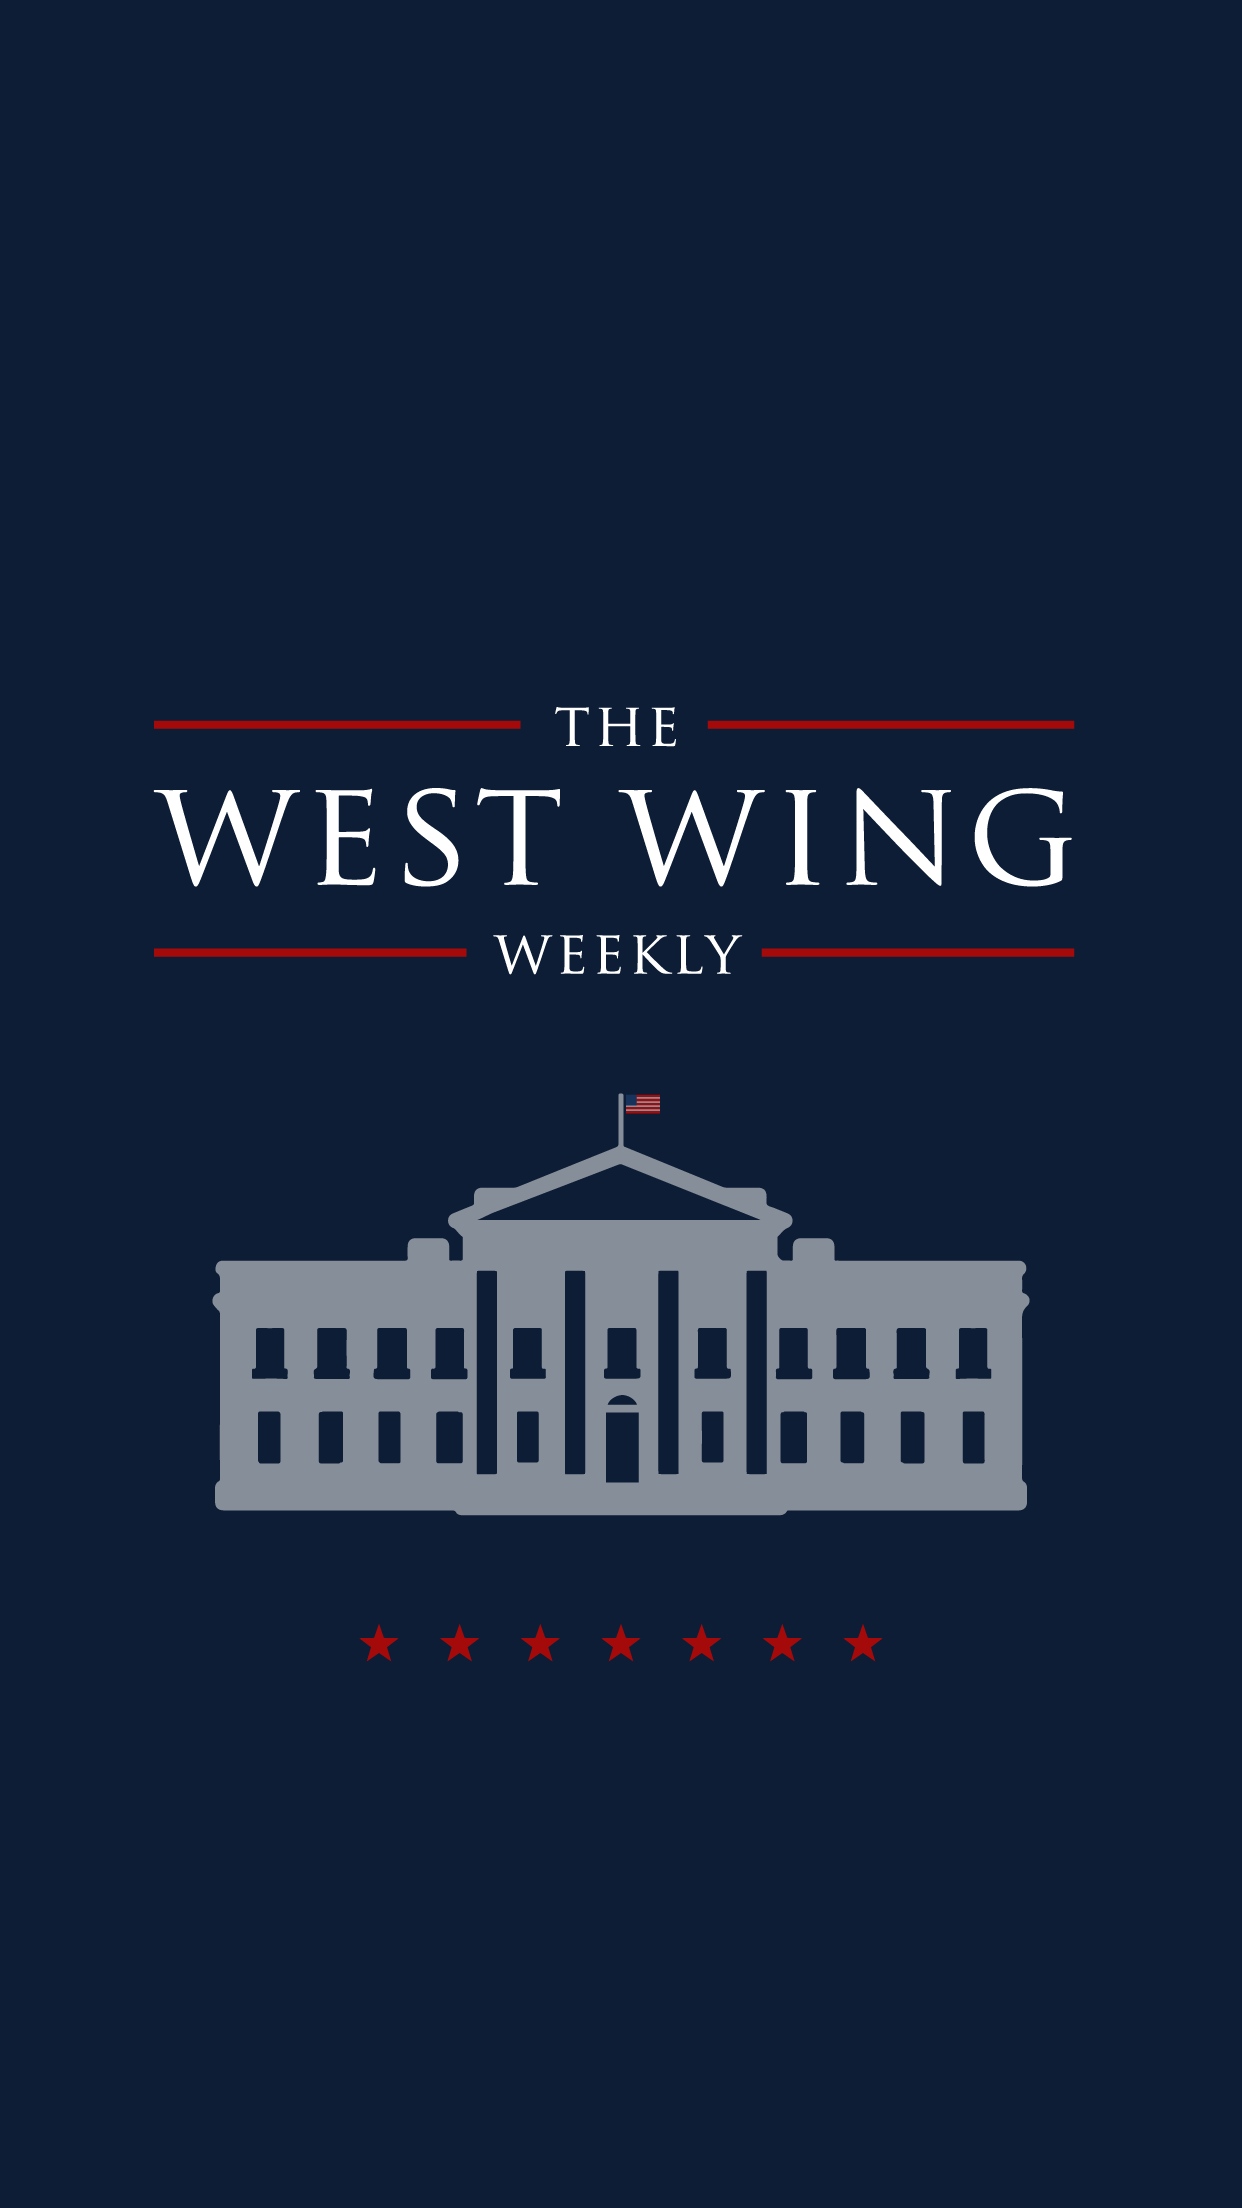 FAQ The West Wing Weekly